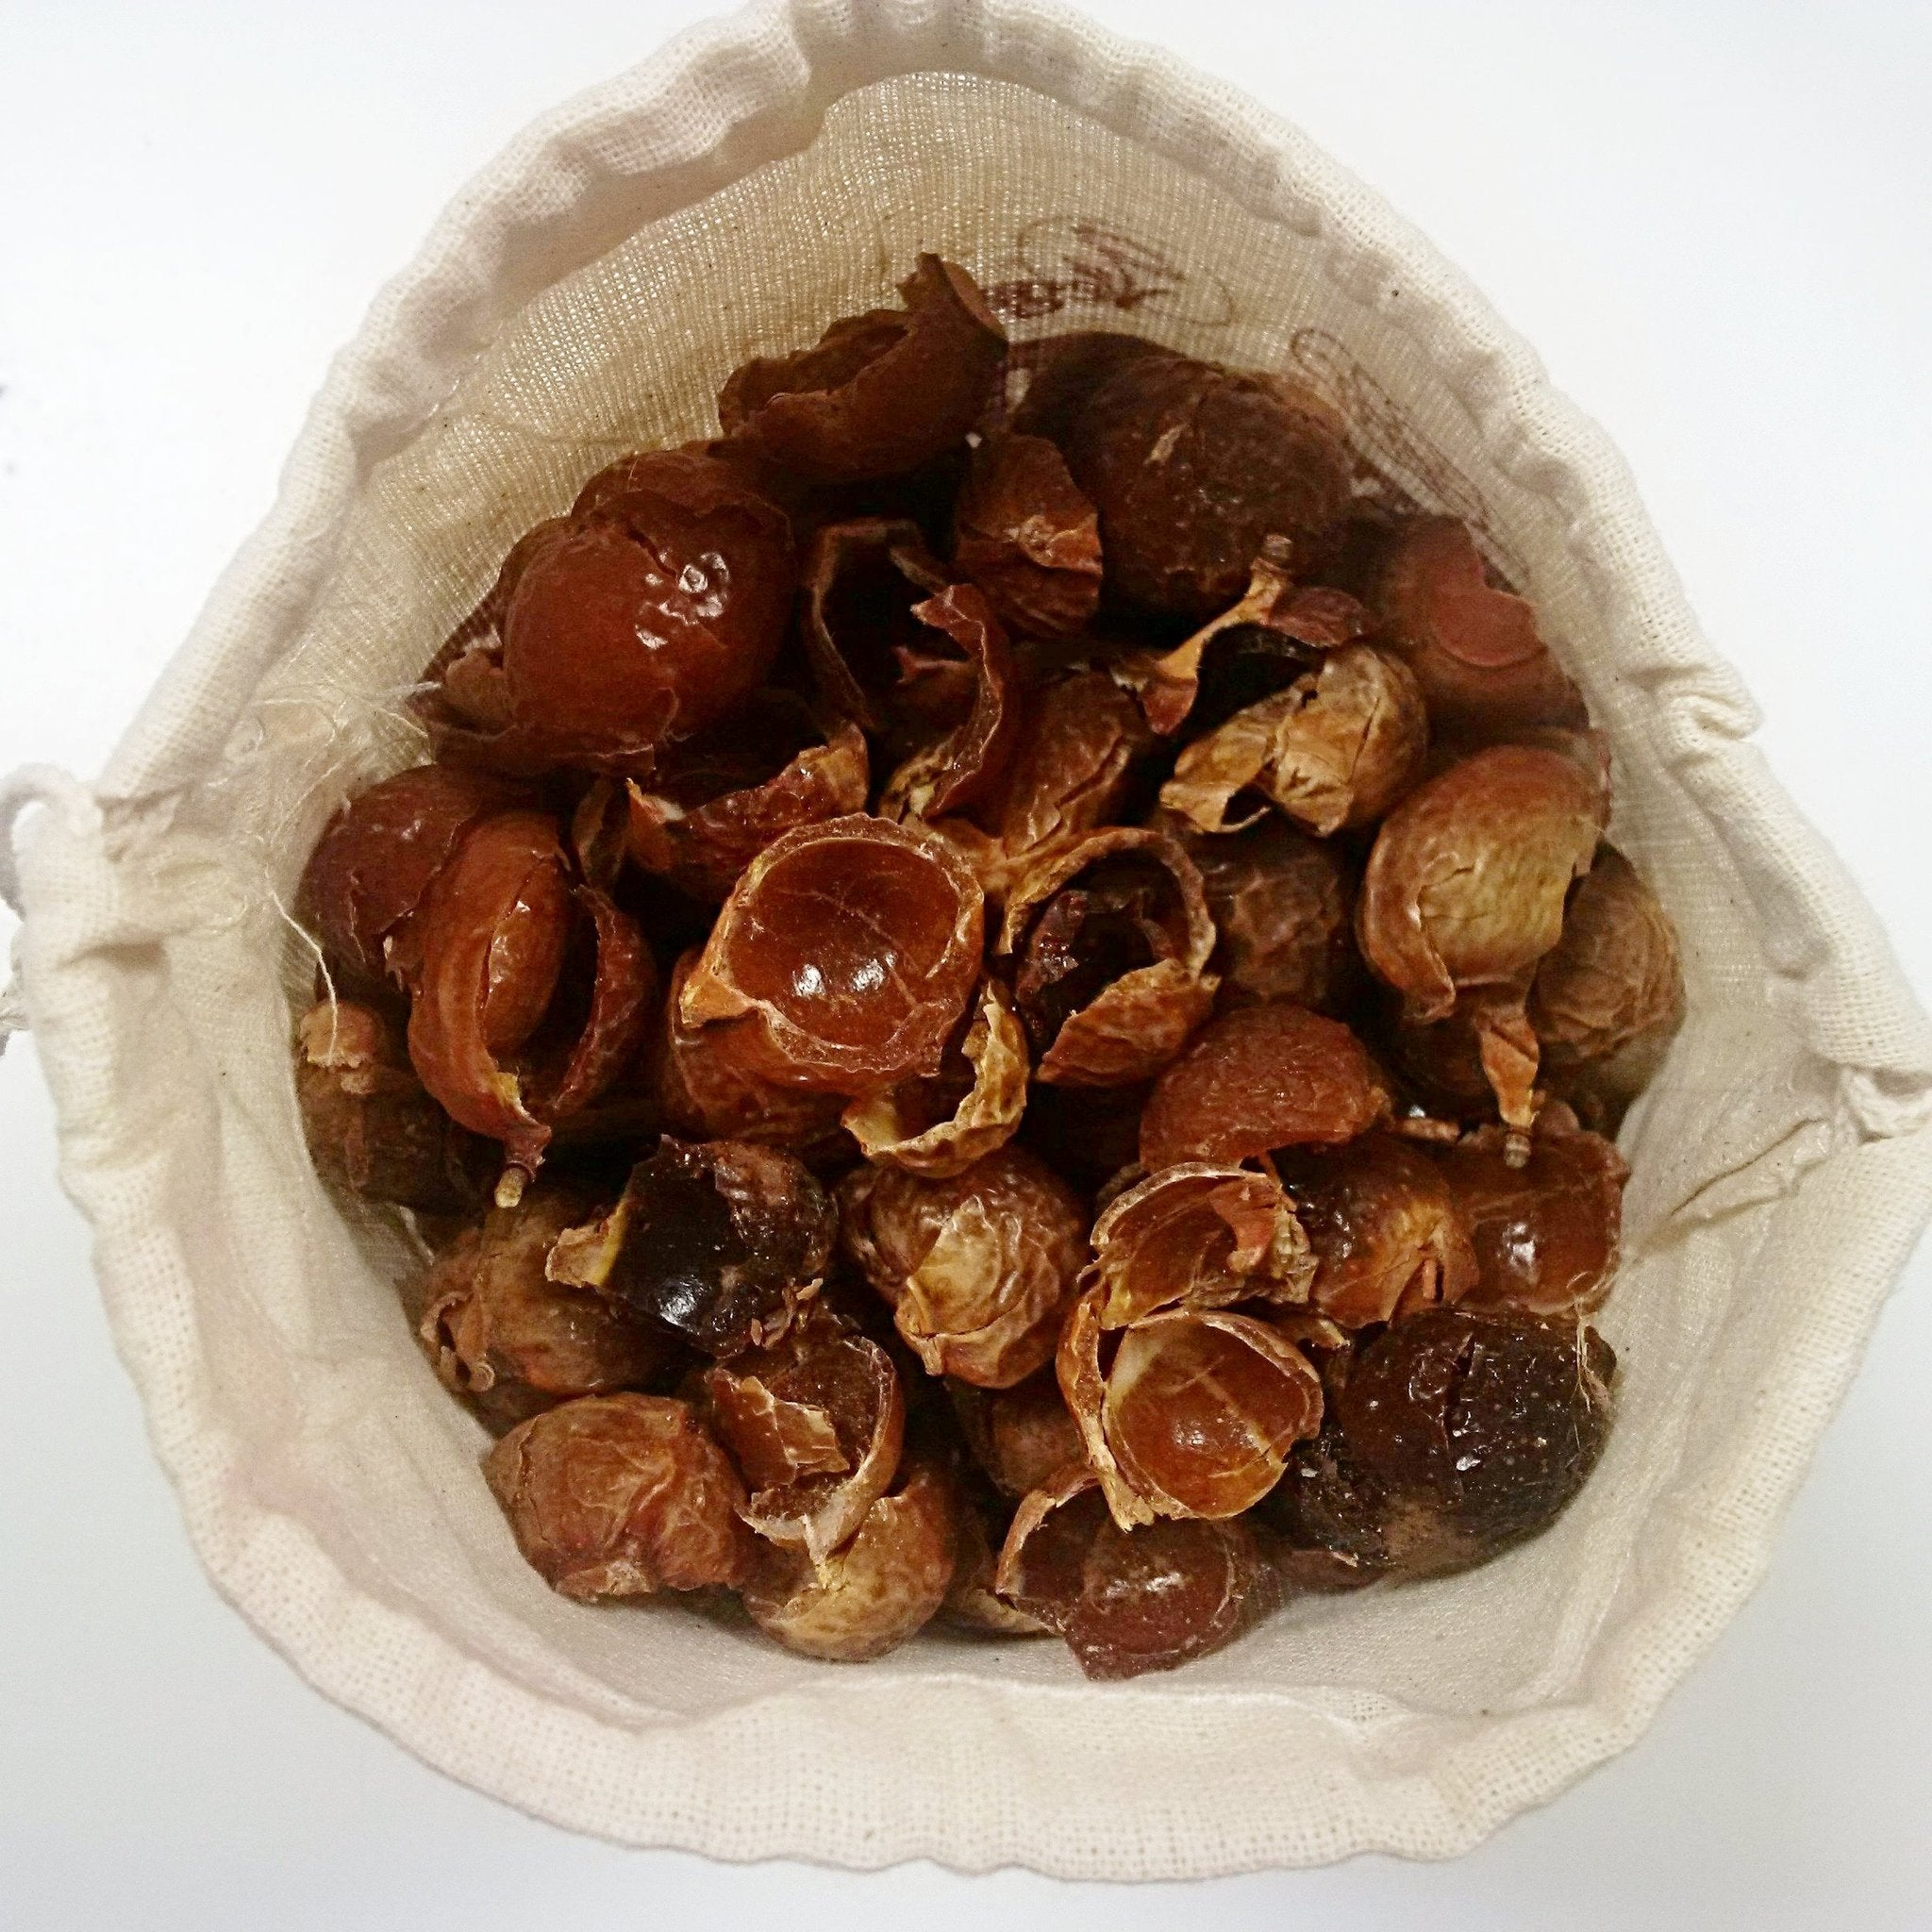 ORGANIC SOAPNUTS 1 KILO WITH STORAGE BAG - 480 WASHES - Great for all washing machines & Dish washer - natoorio